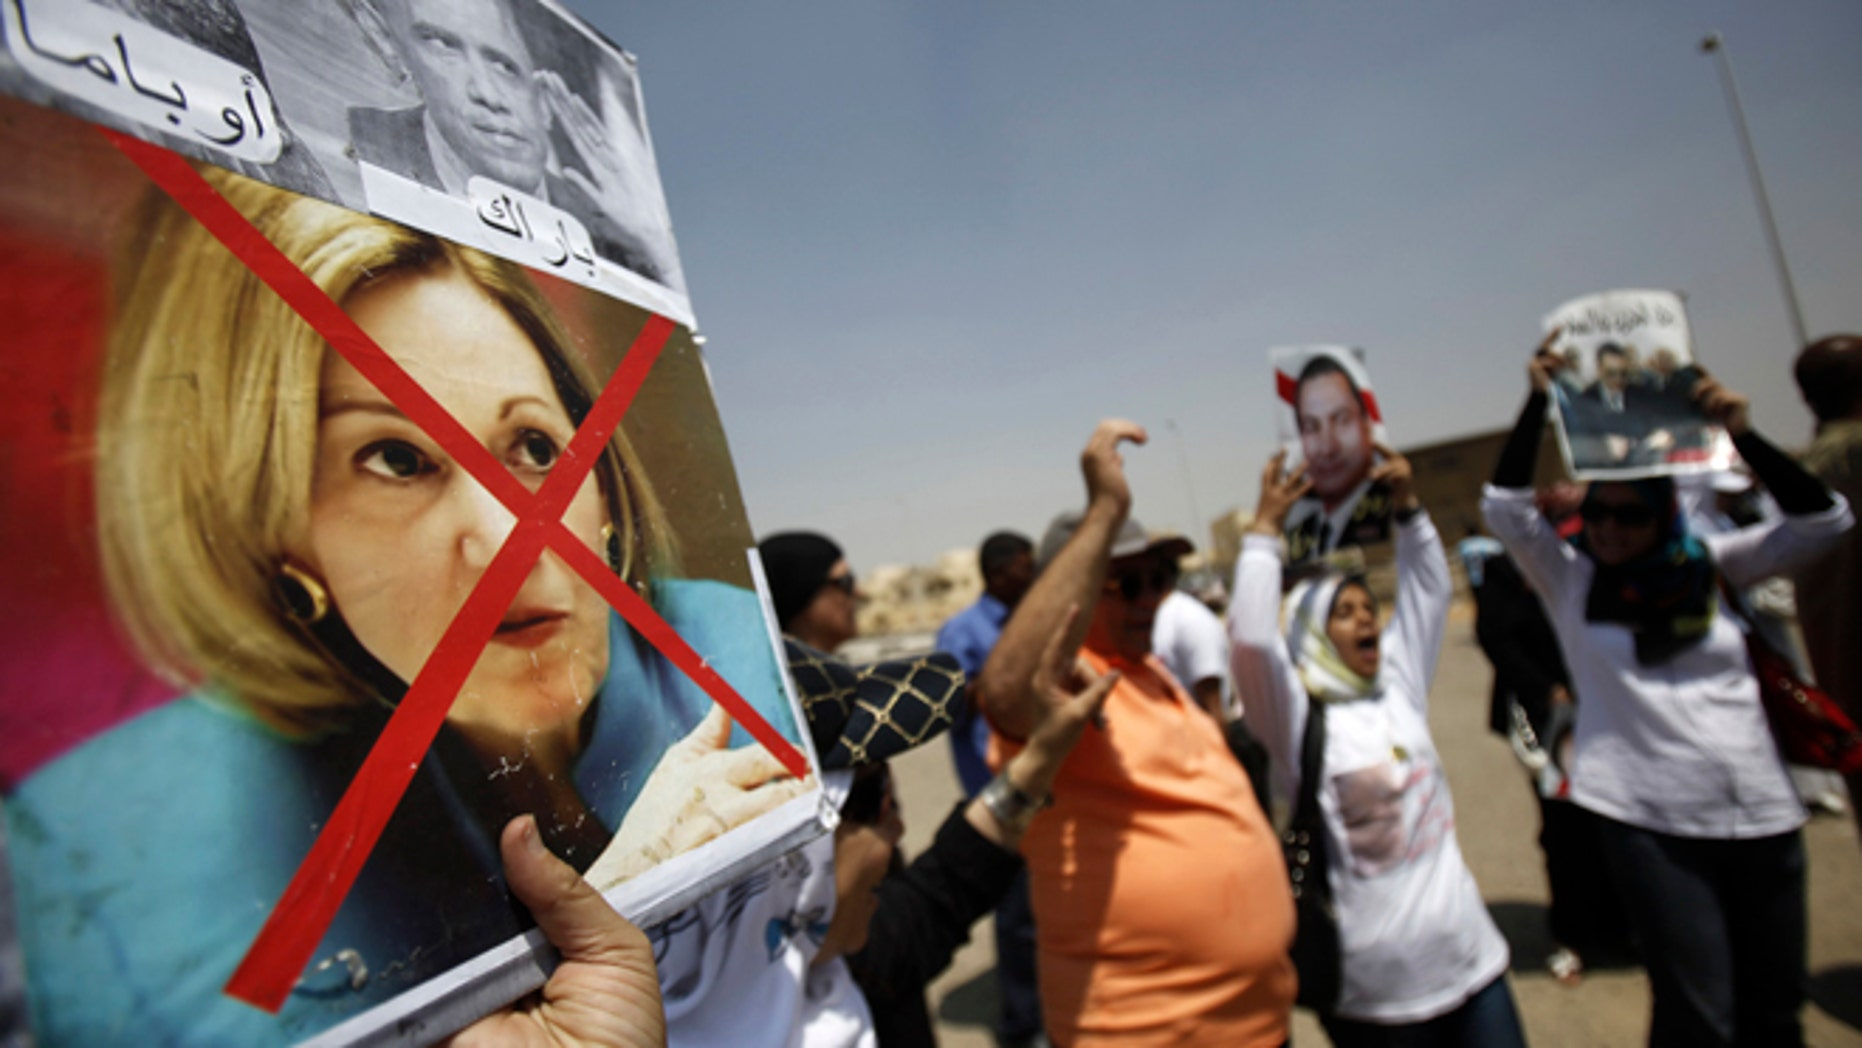 A defaced picture of ex-U.S. Ambassador to Egypt Anne Patterson is seen in this poster held by a supporter of Egypt's former president Hosni Mubarak in 2013.